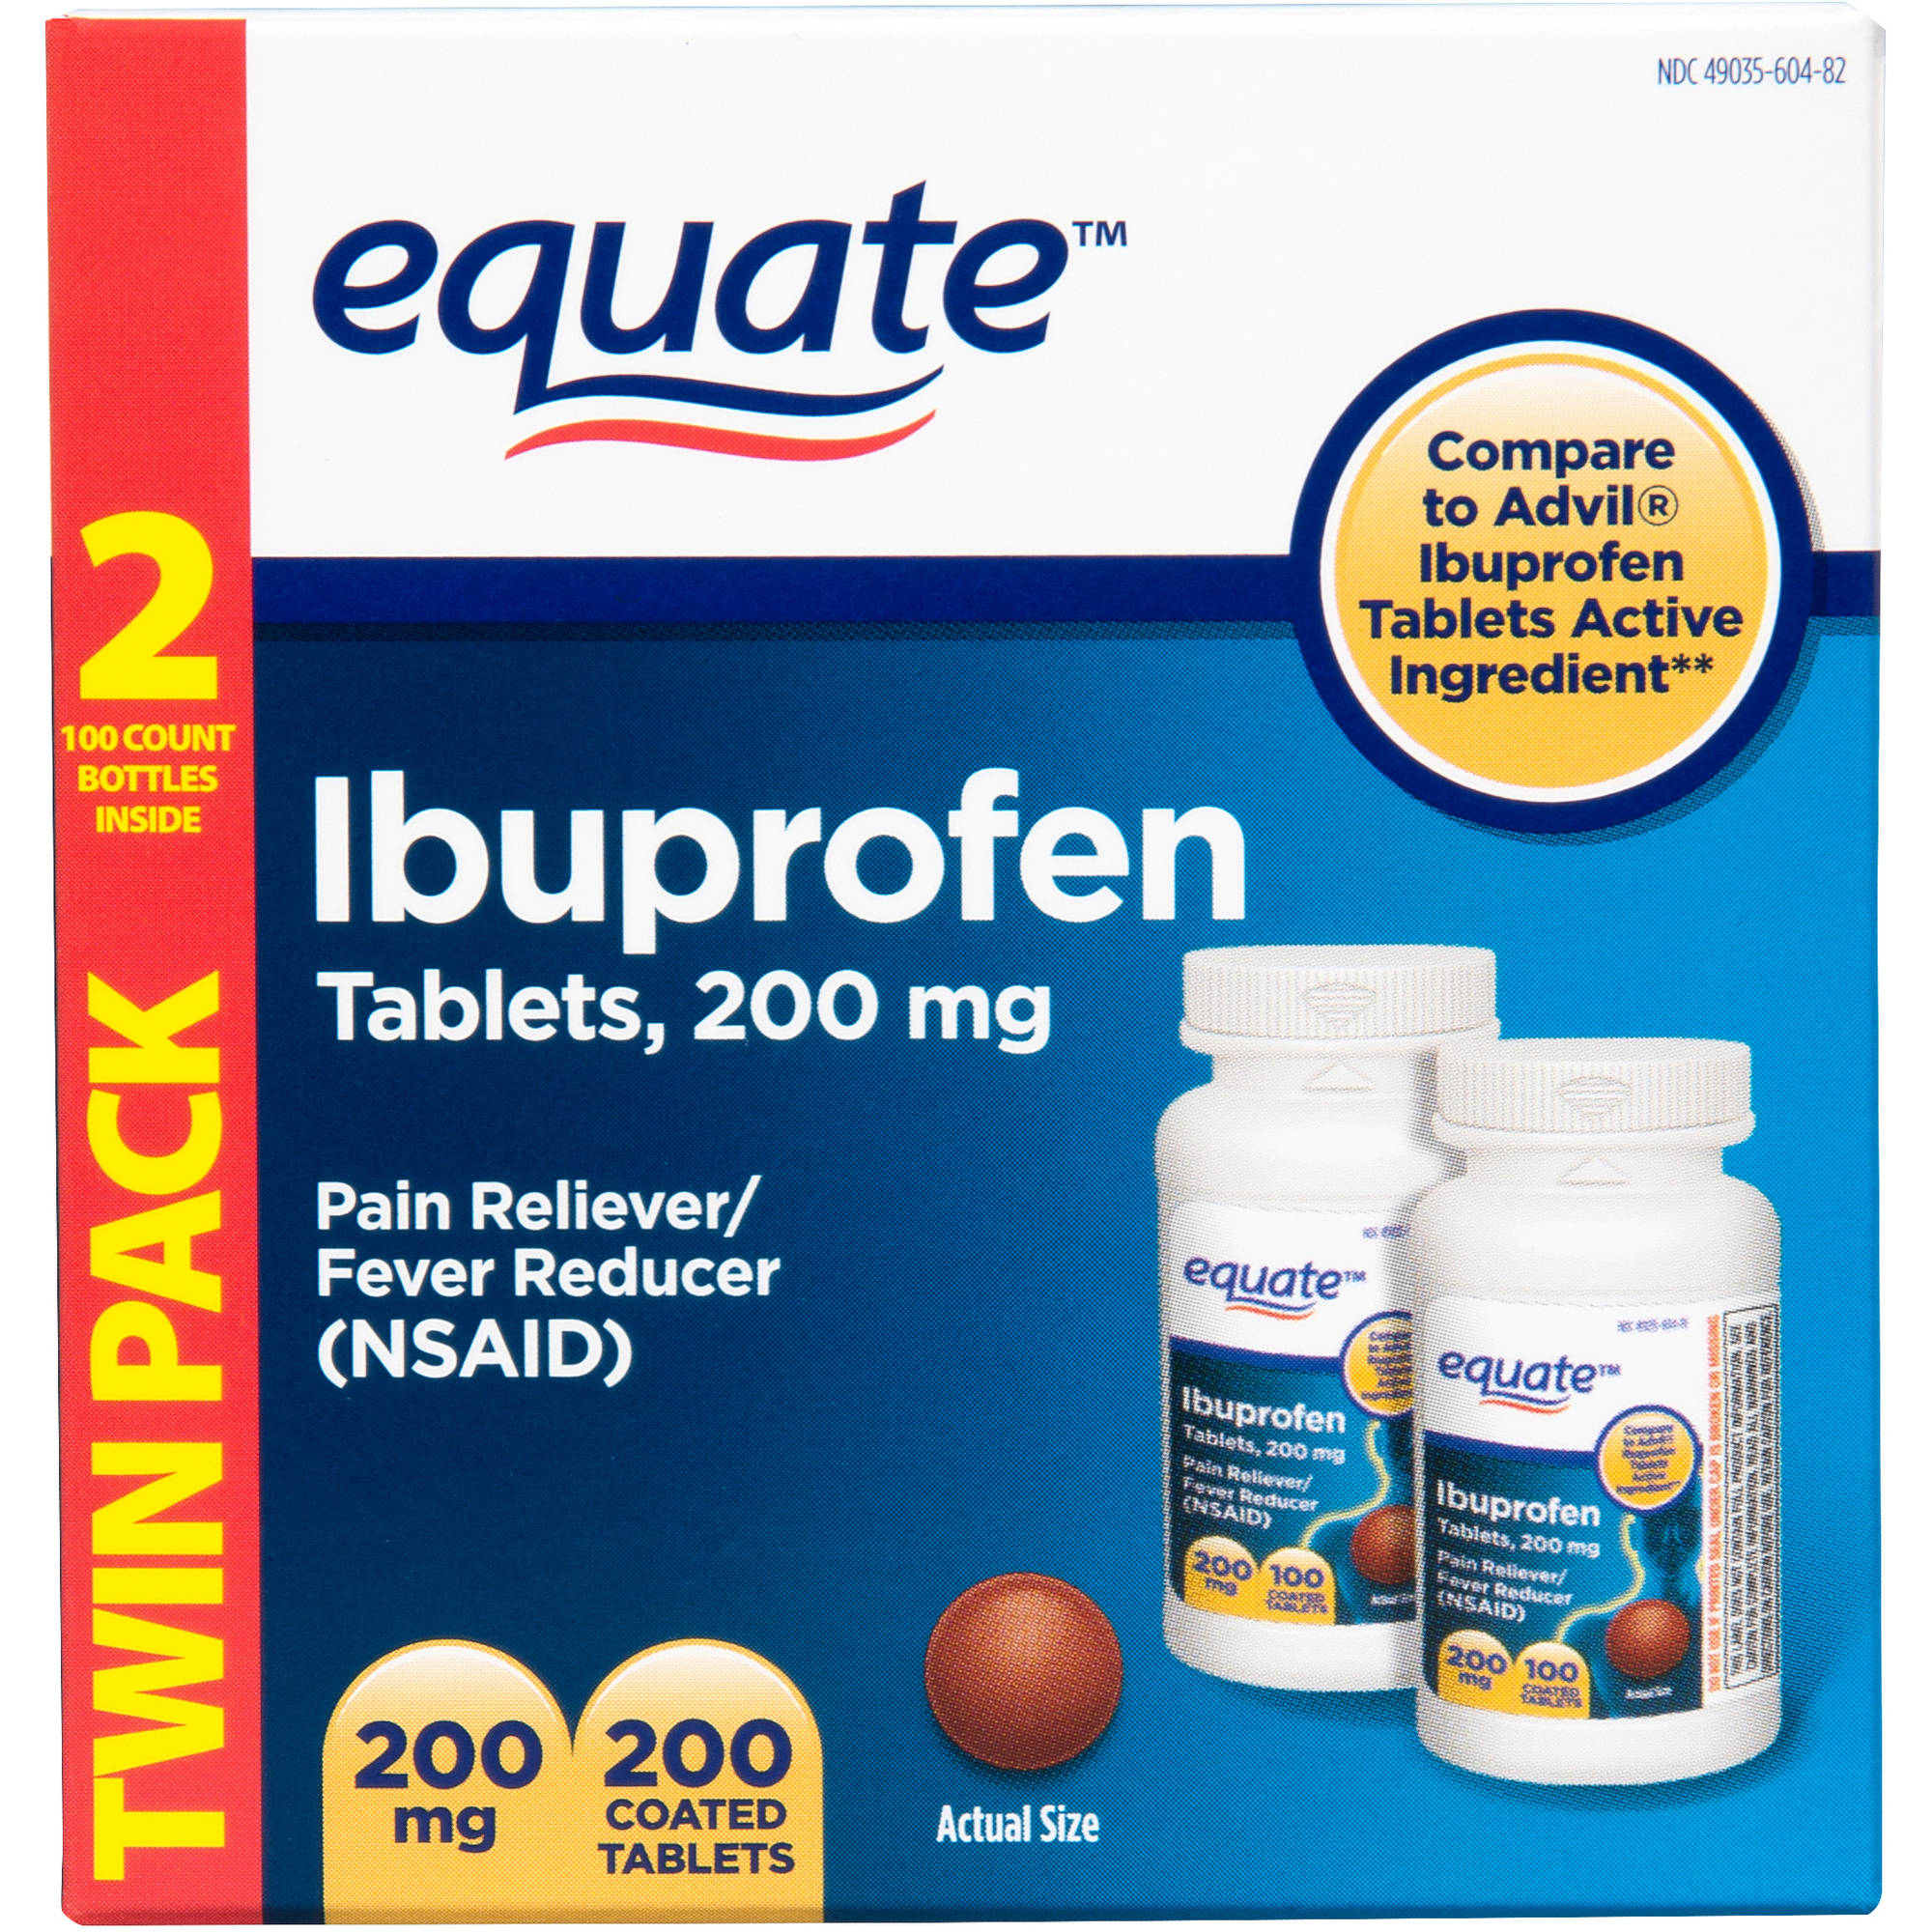 Equate Ibuprofen Tablets, 200mg - 2x 100ct